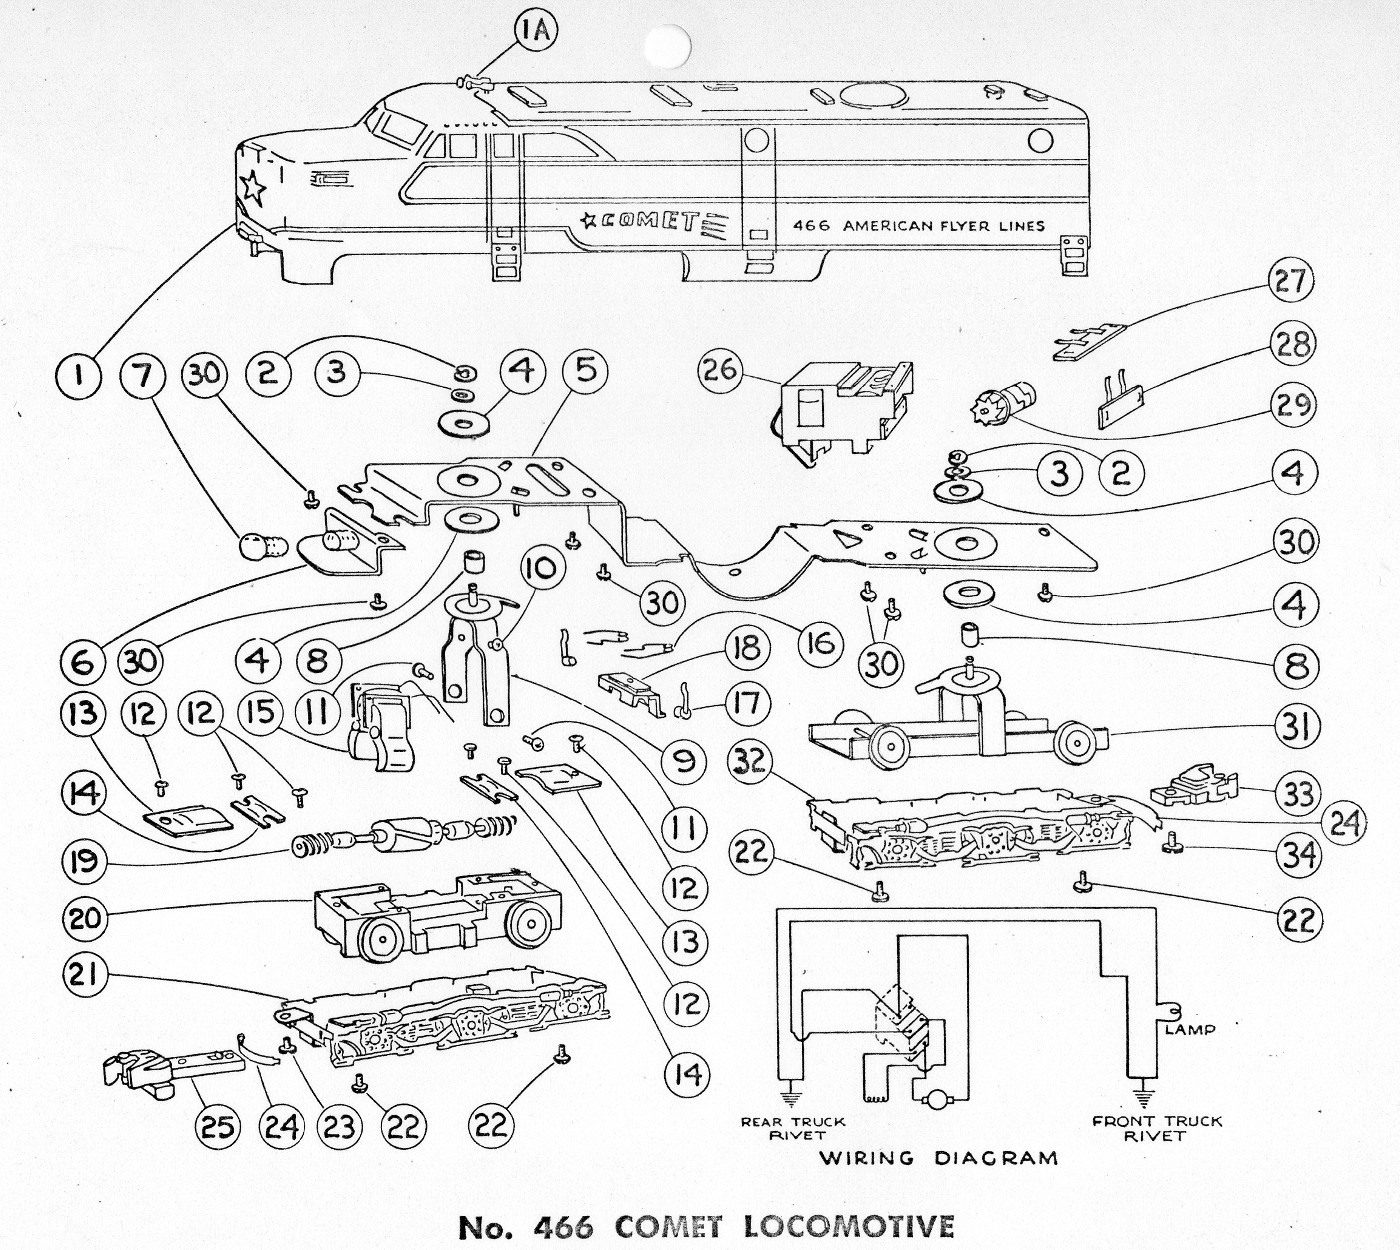 lionel locomotive wiring diagram